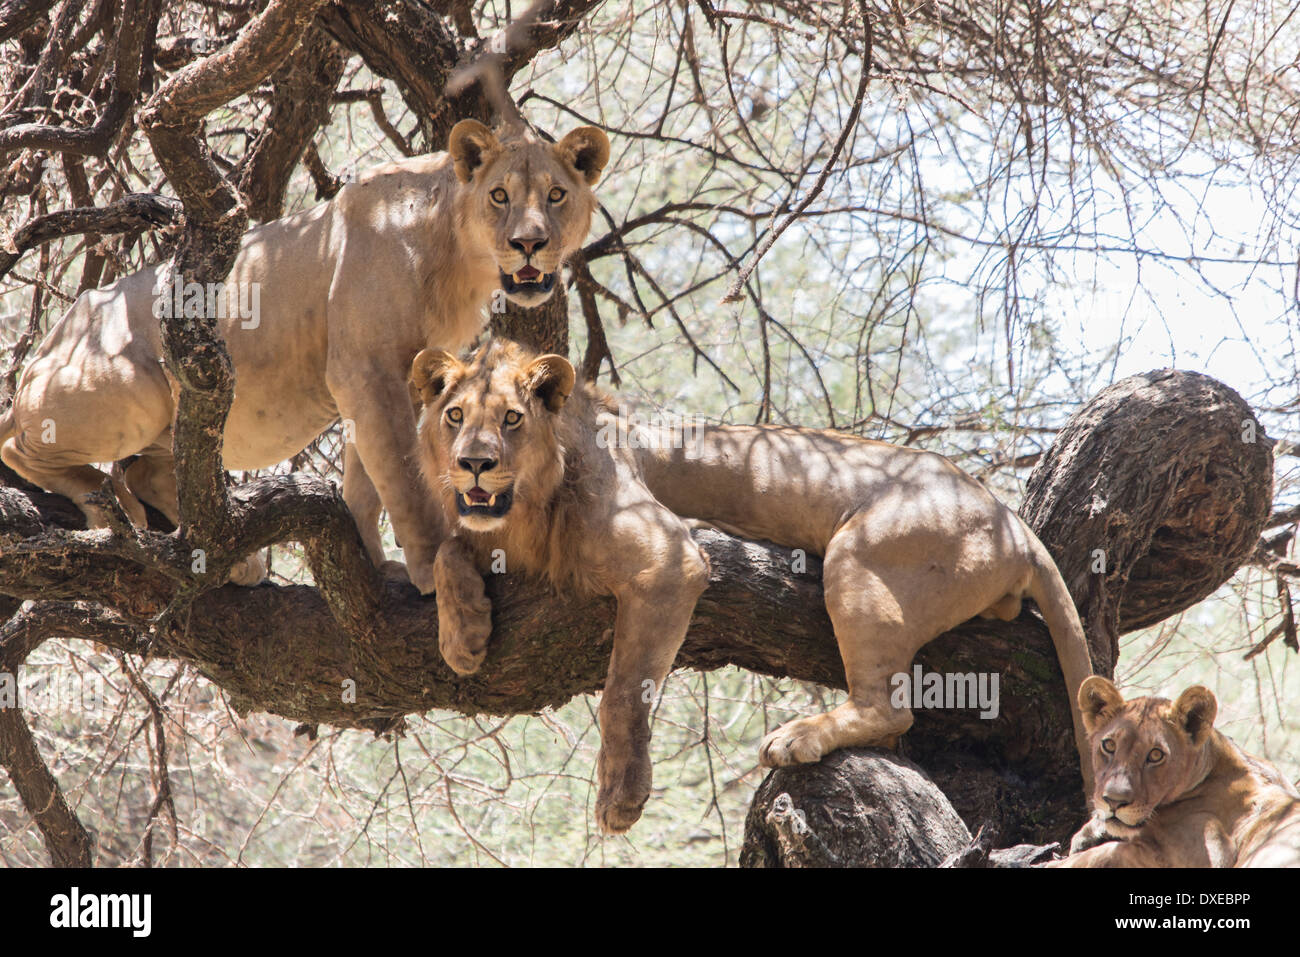 A family of lions in a tree in Tanzania Stock Photo